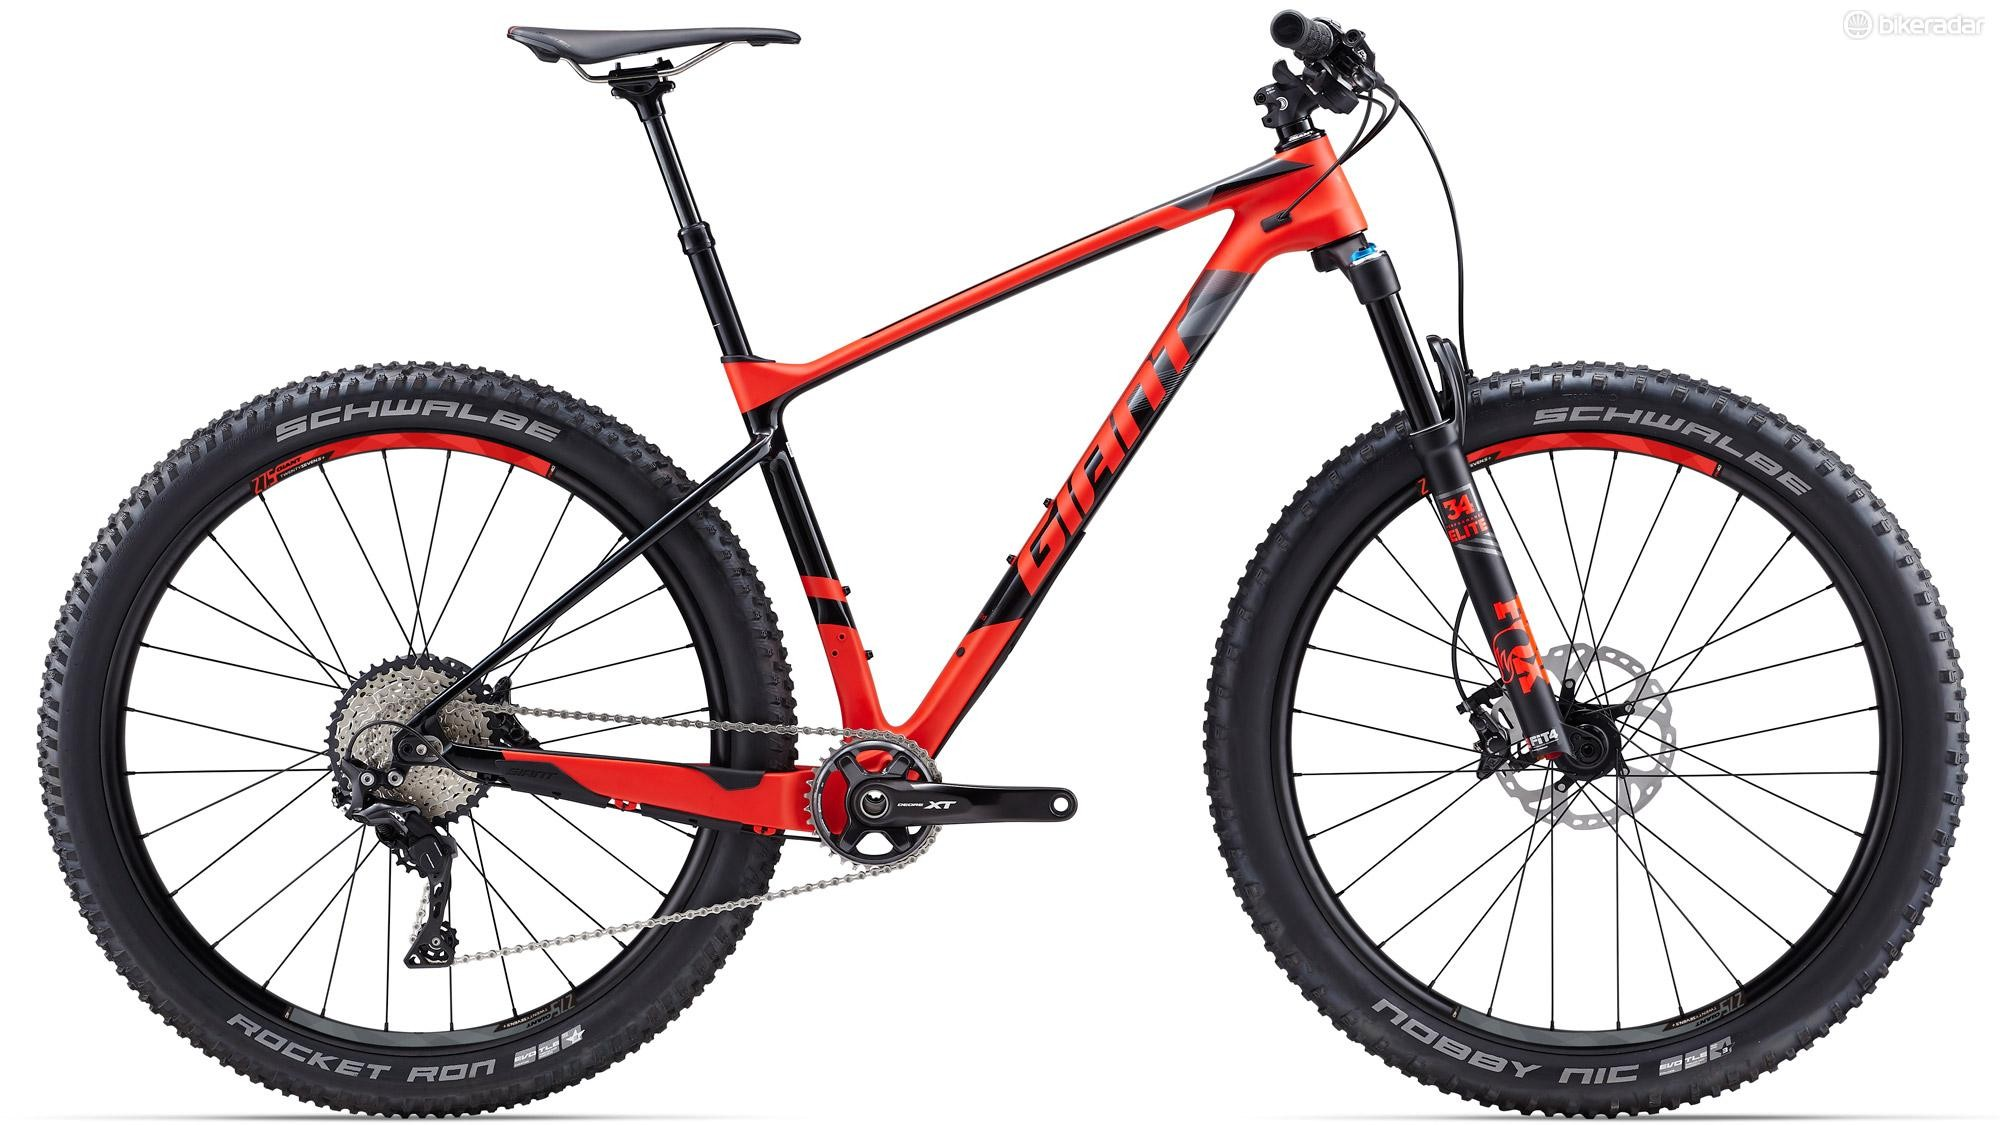 Loaded with a carbon frame and 27+ tires, the new XTC Advanced+ can take XC to a whole new level